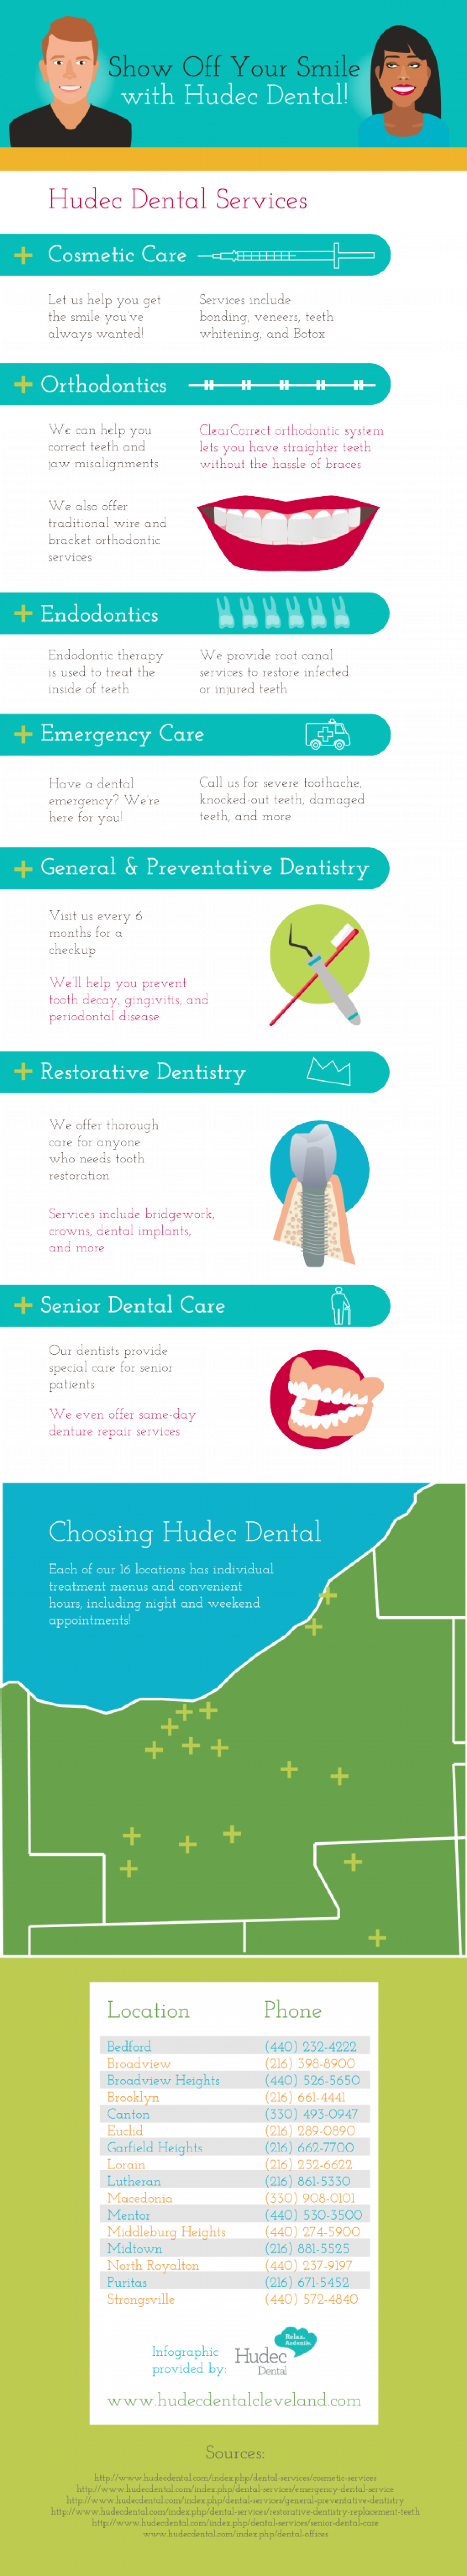 Show Off Your Smile with Hudec Dental! Infographic